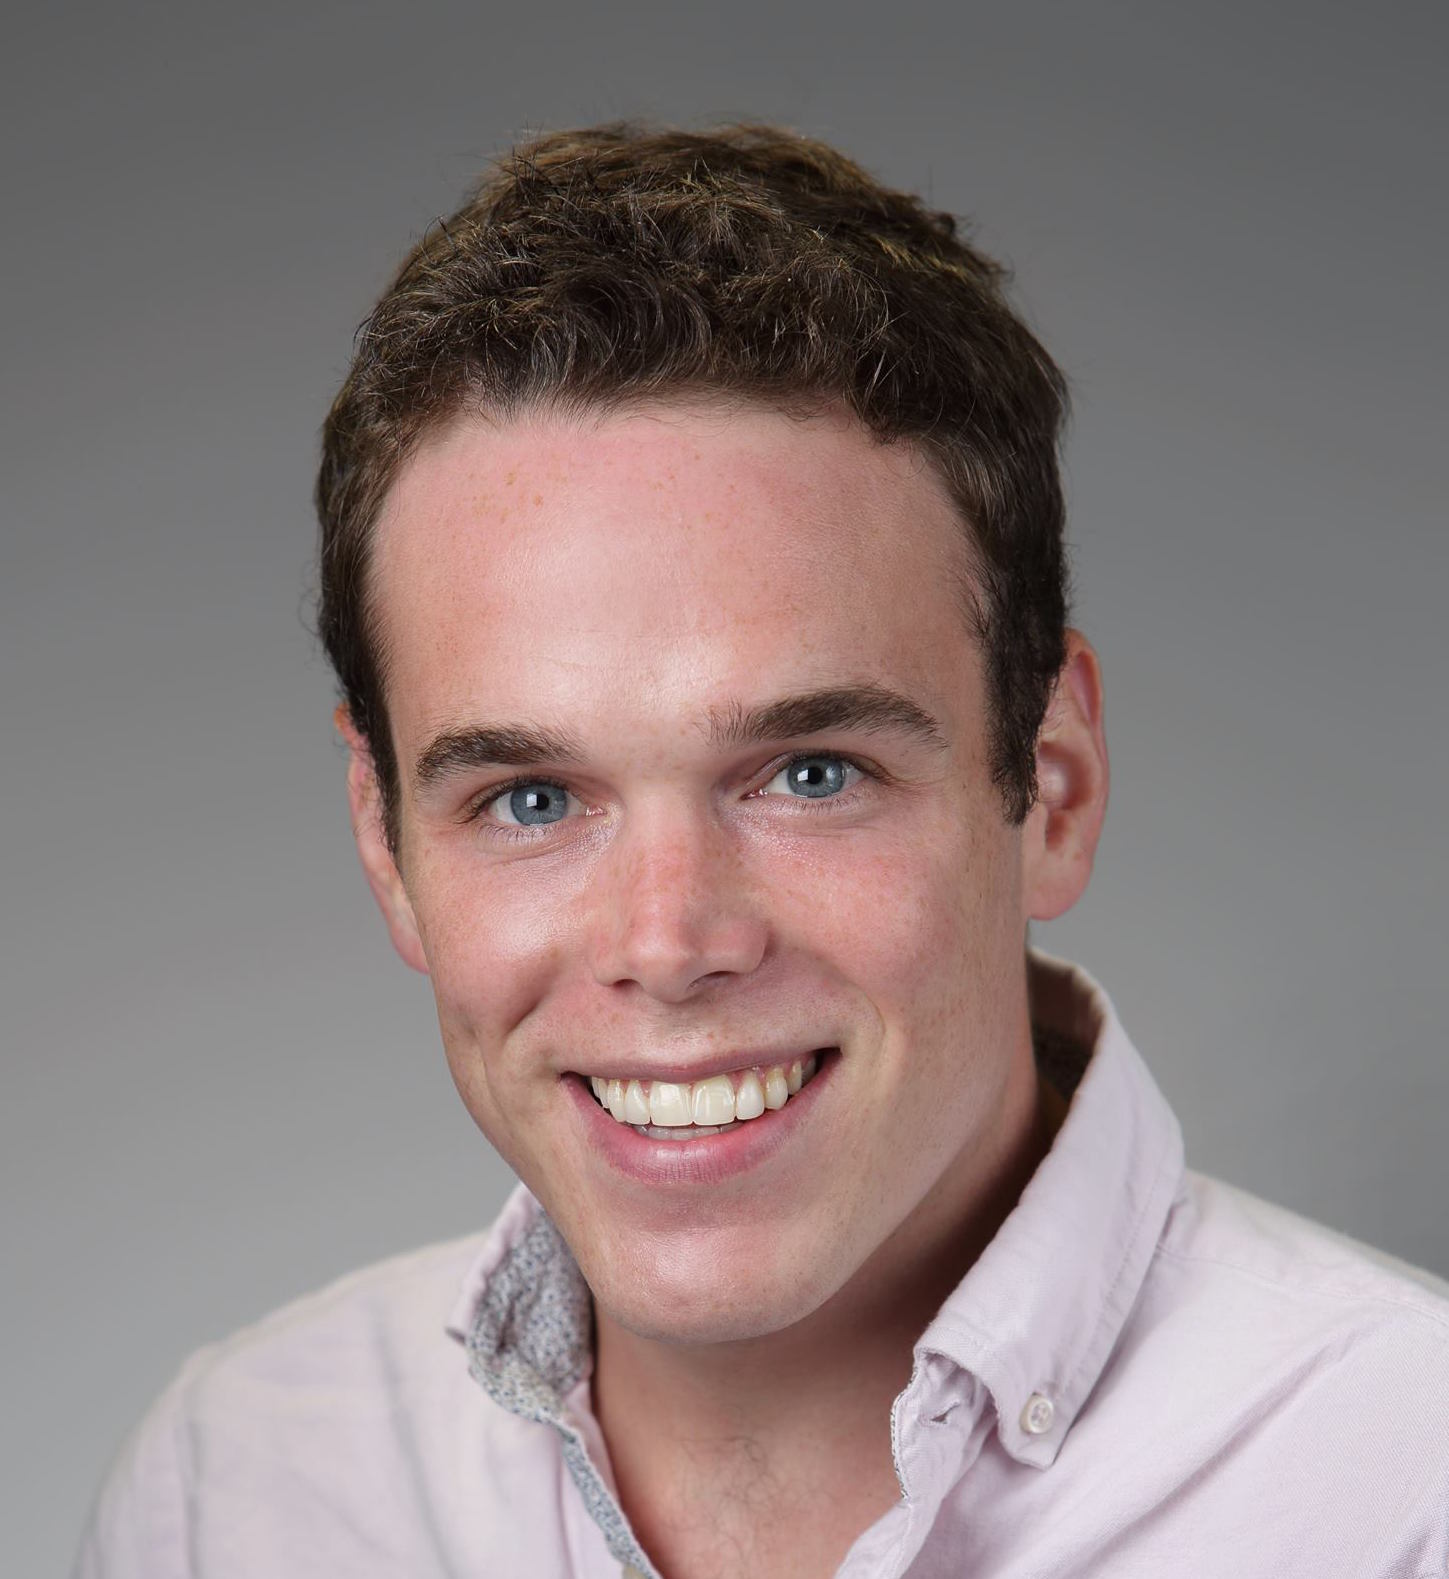 Noah Robinson - is a doctoral student at Vanderbilt University studying clinical psychology. He is developing Internet-based VR interventions to treat addiction.